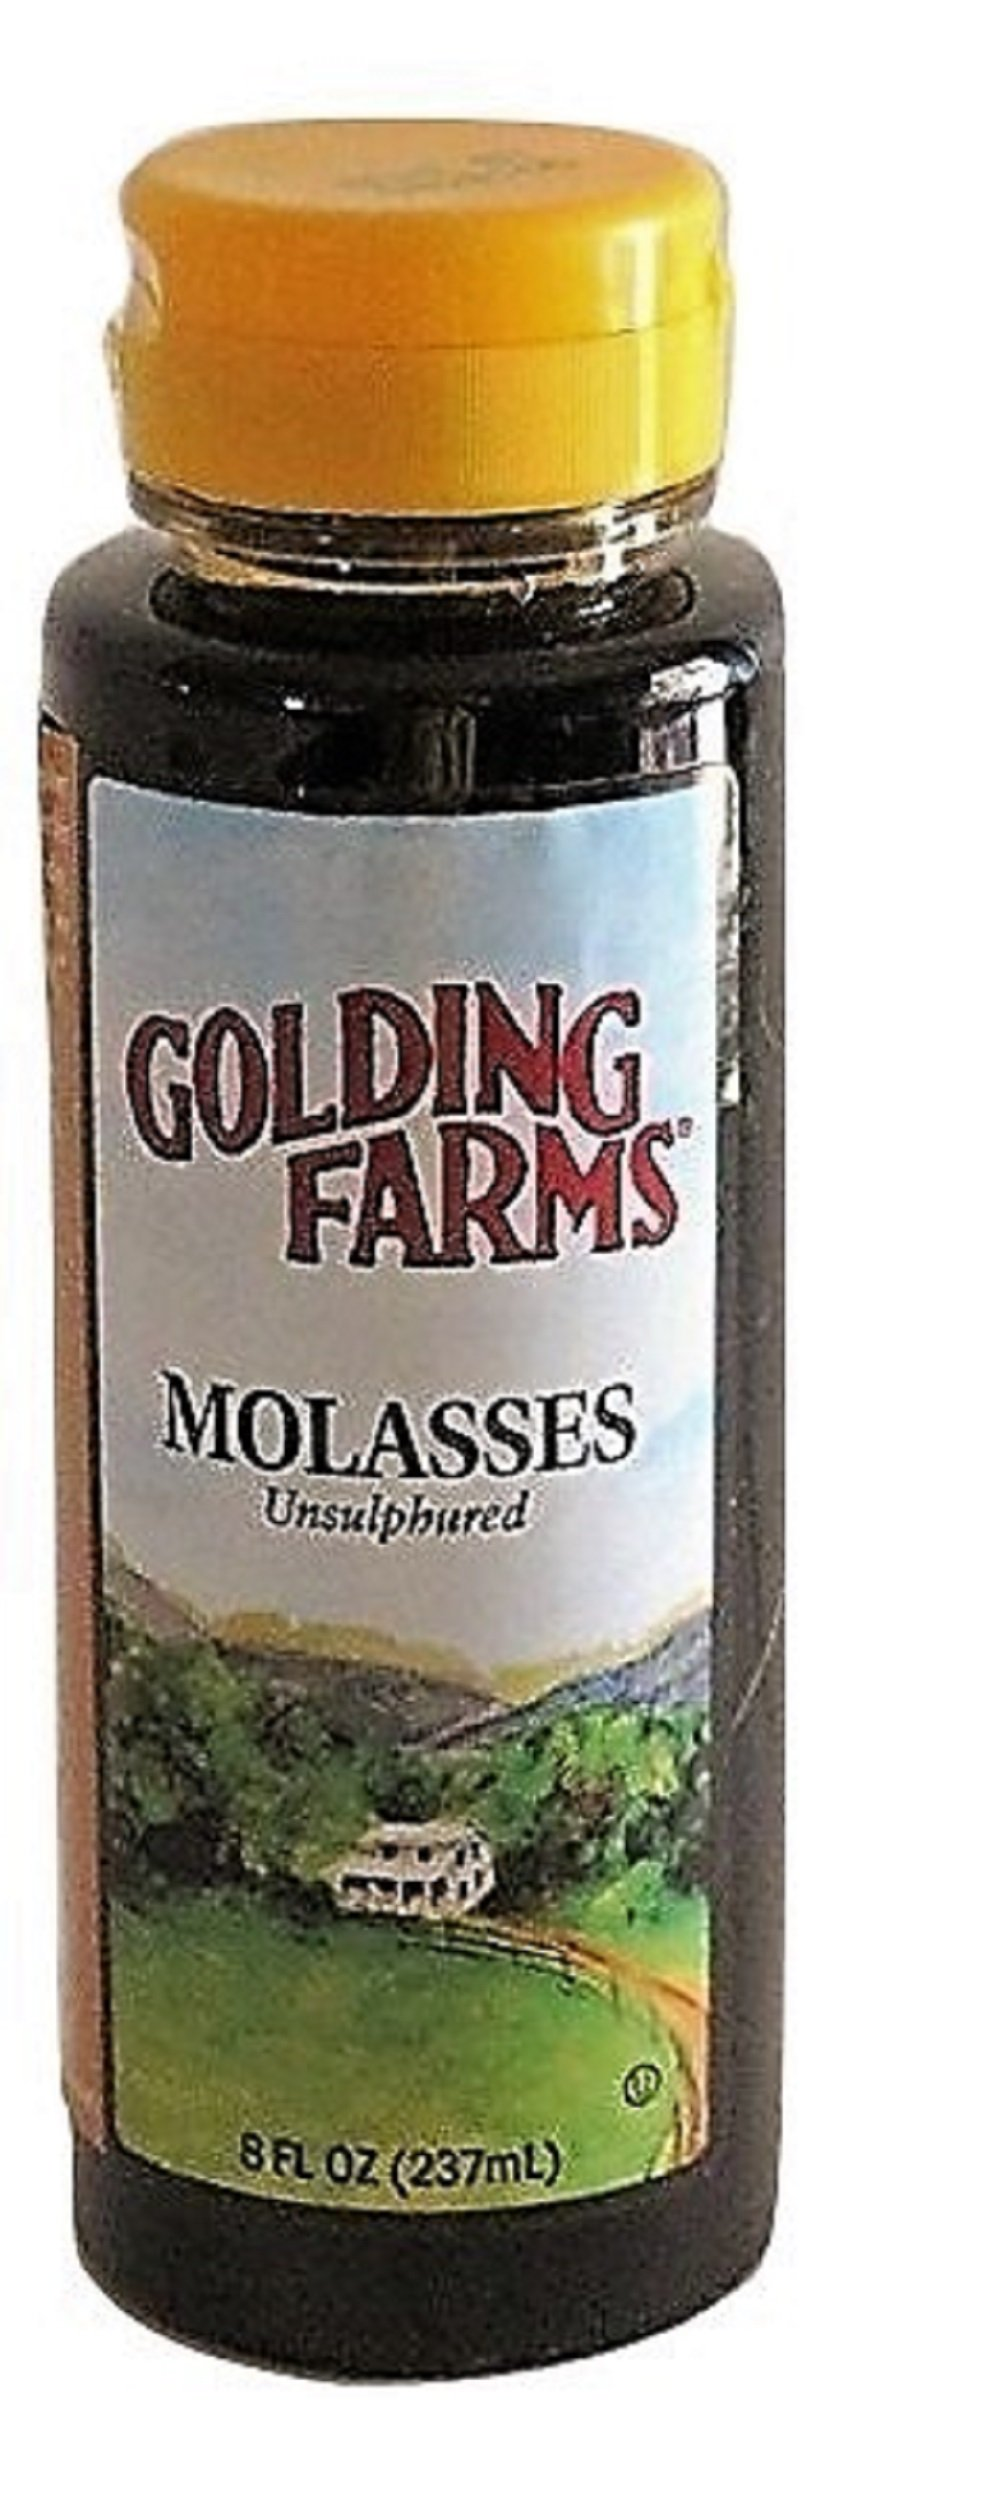 Golding Farms All Natural Unsulphured Molasses 8 oz. (237ml)